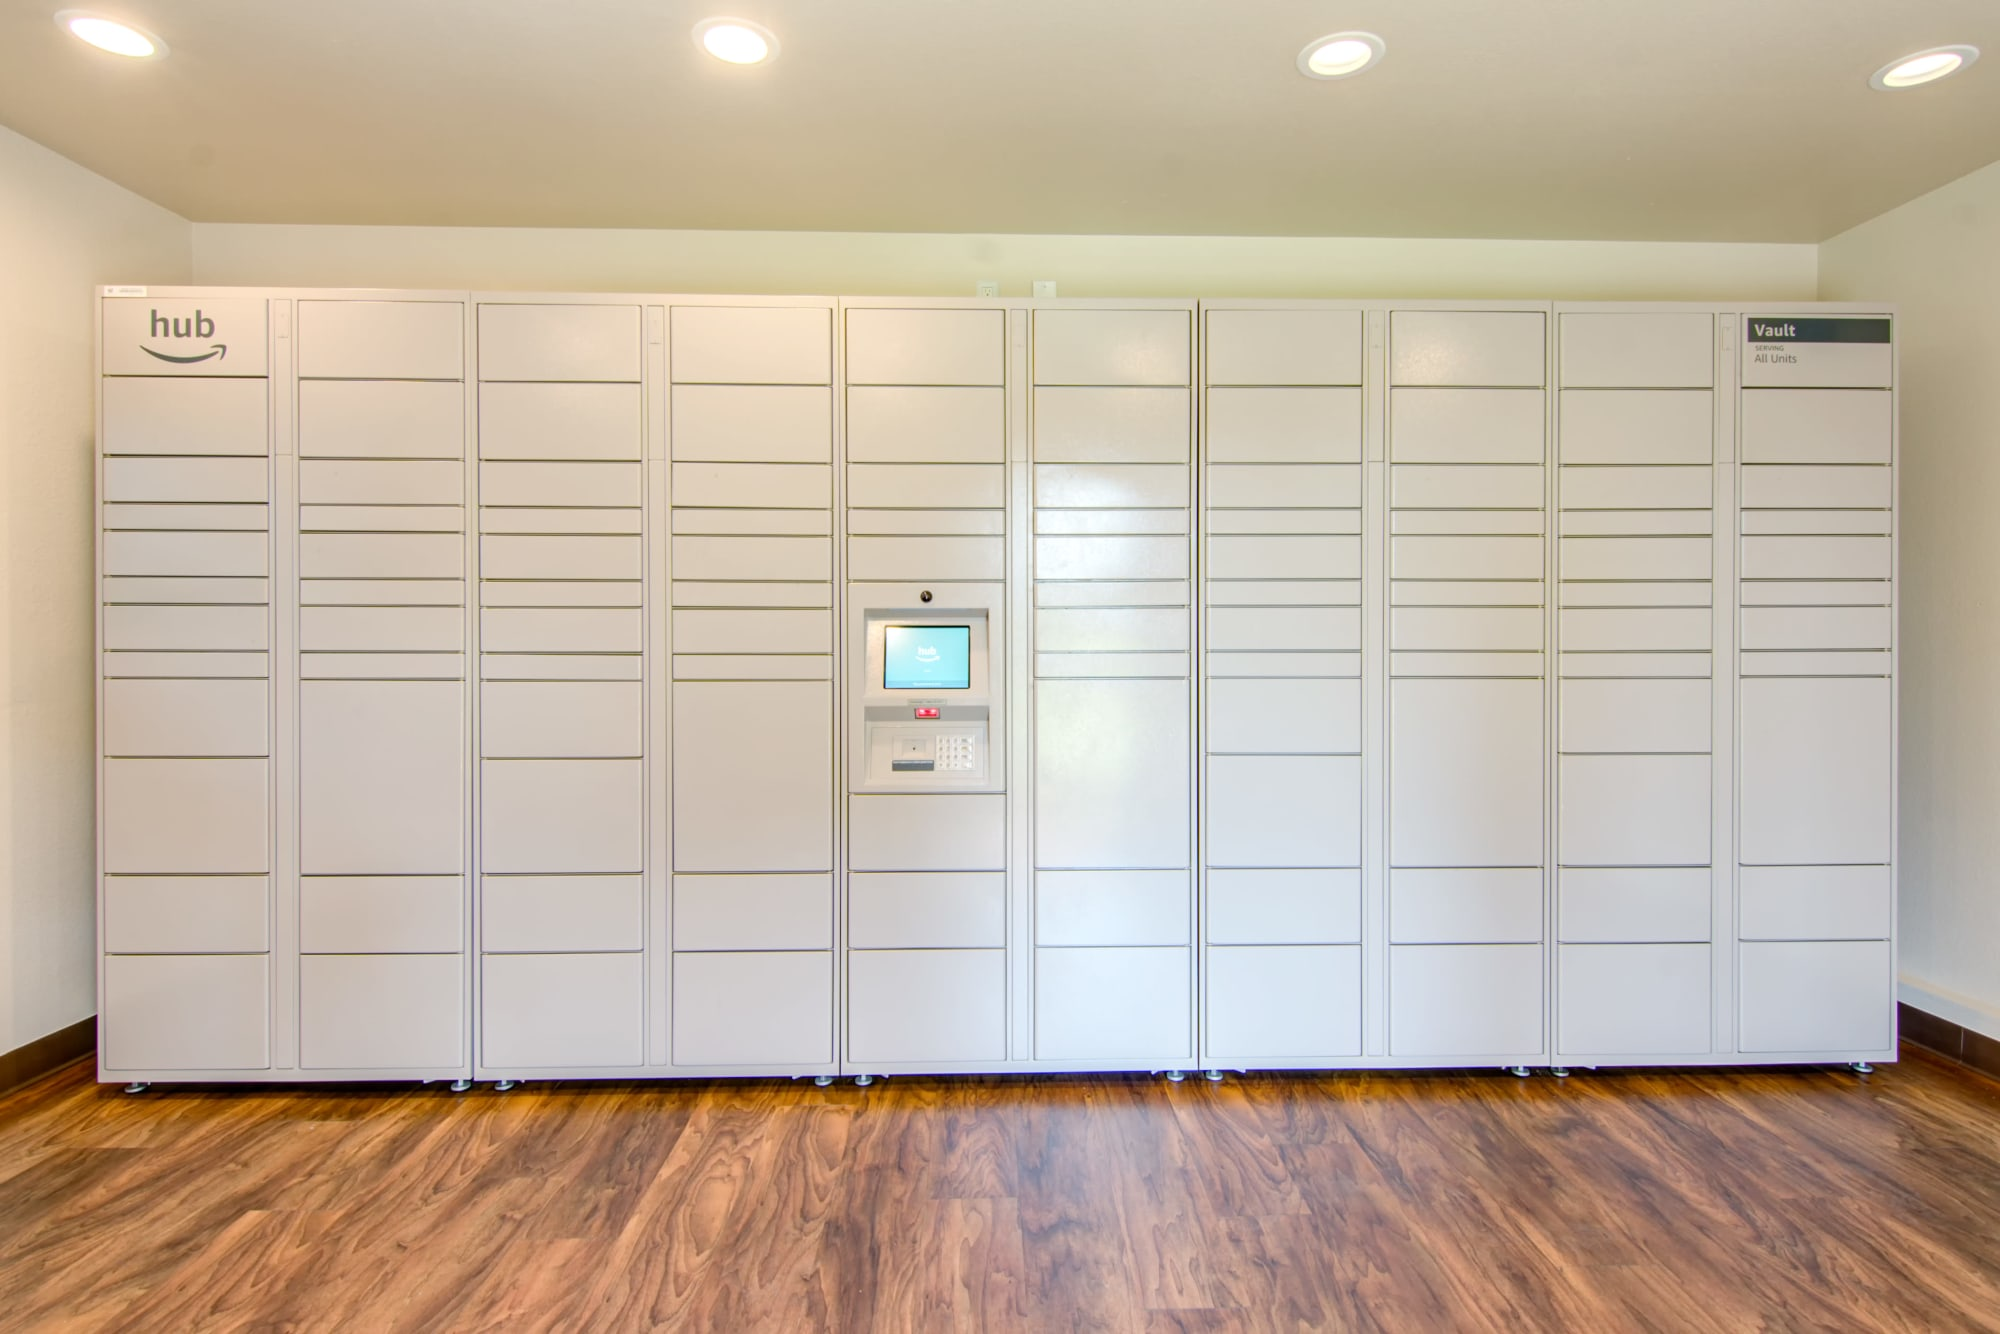 24-hour Amazon HUB Package Lockers